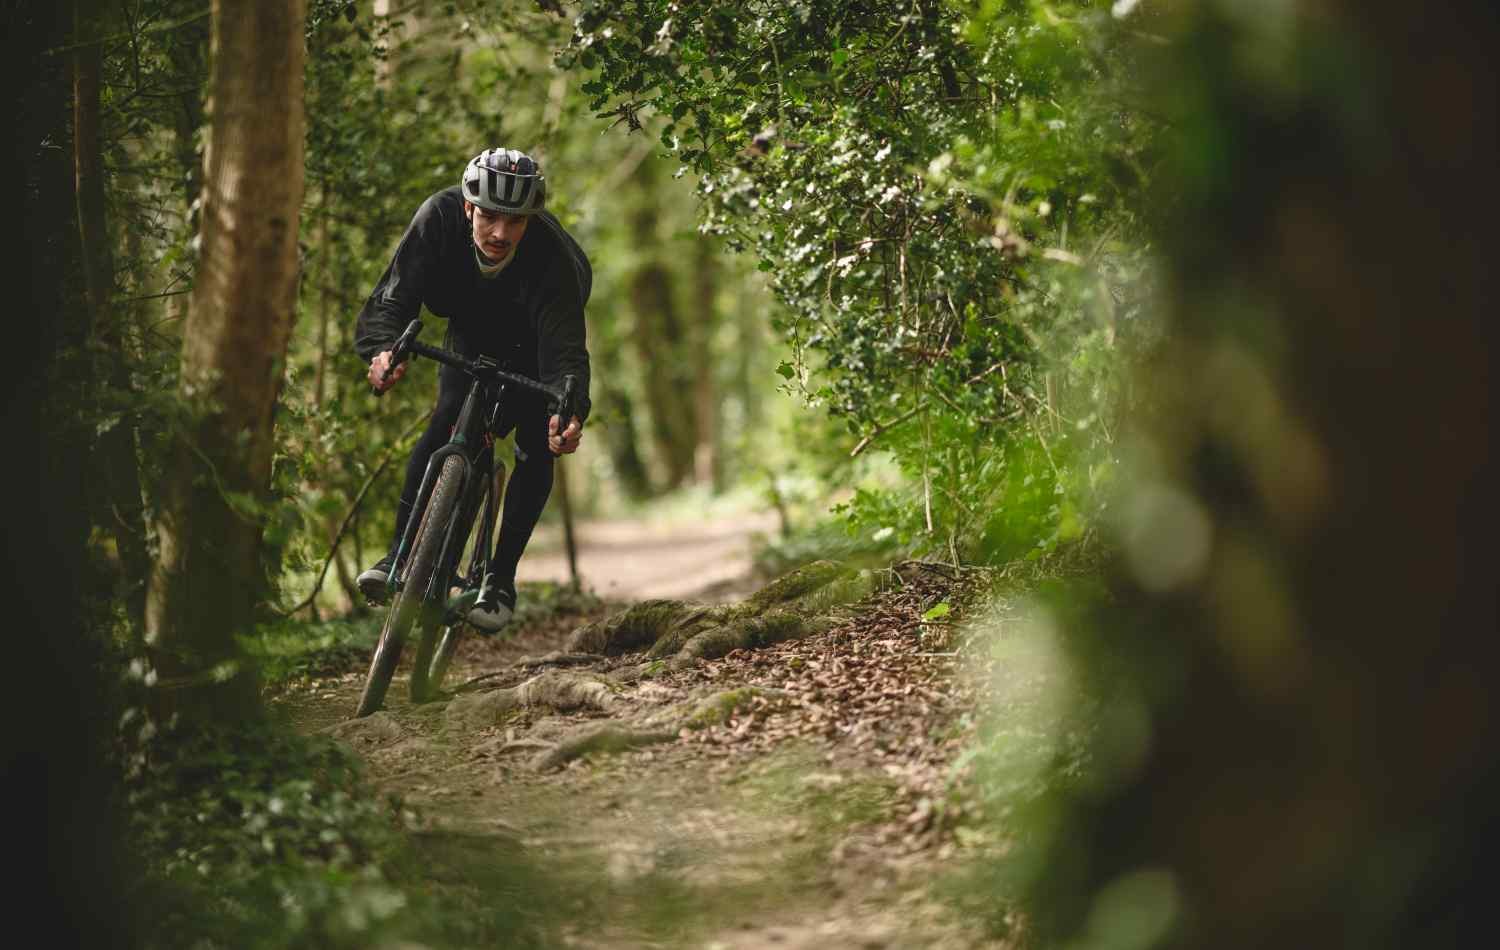 Liam Yates riding a Canyon Grizl down an off-road trail